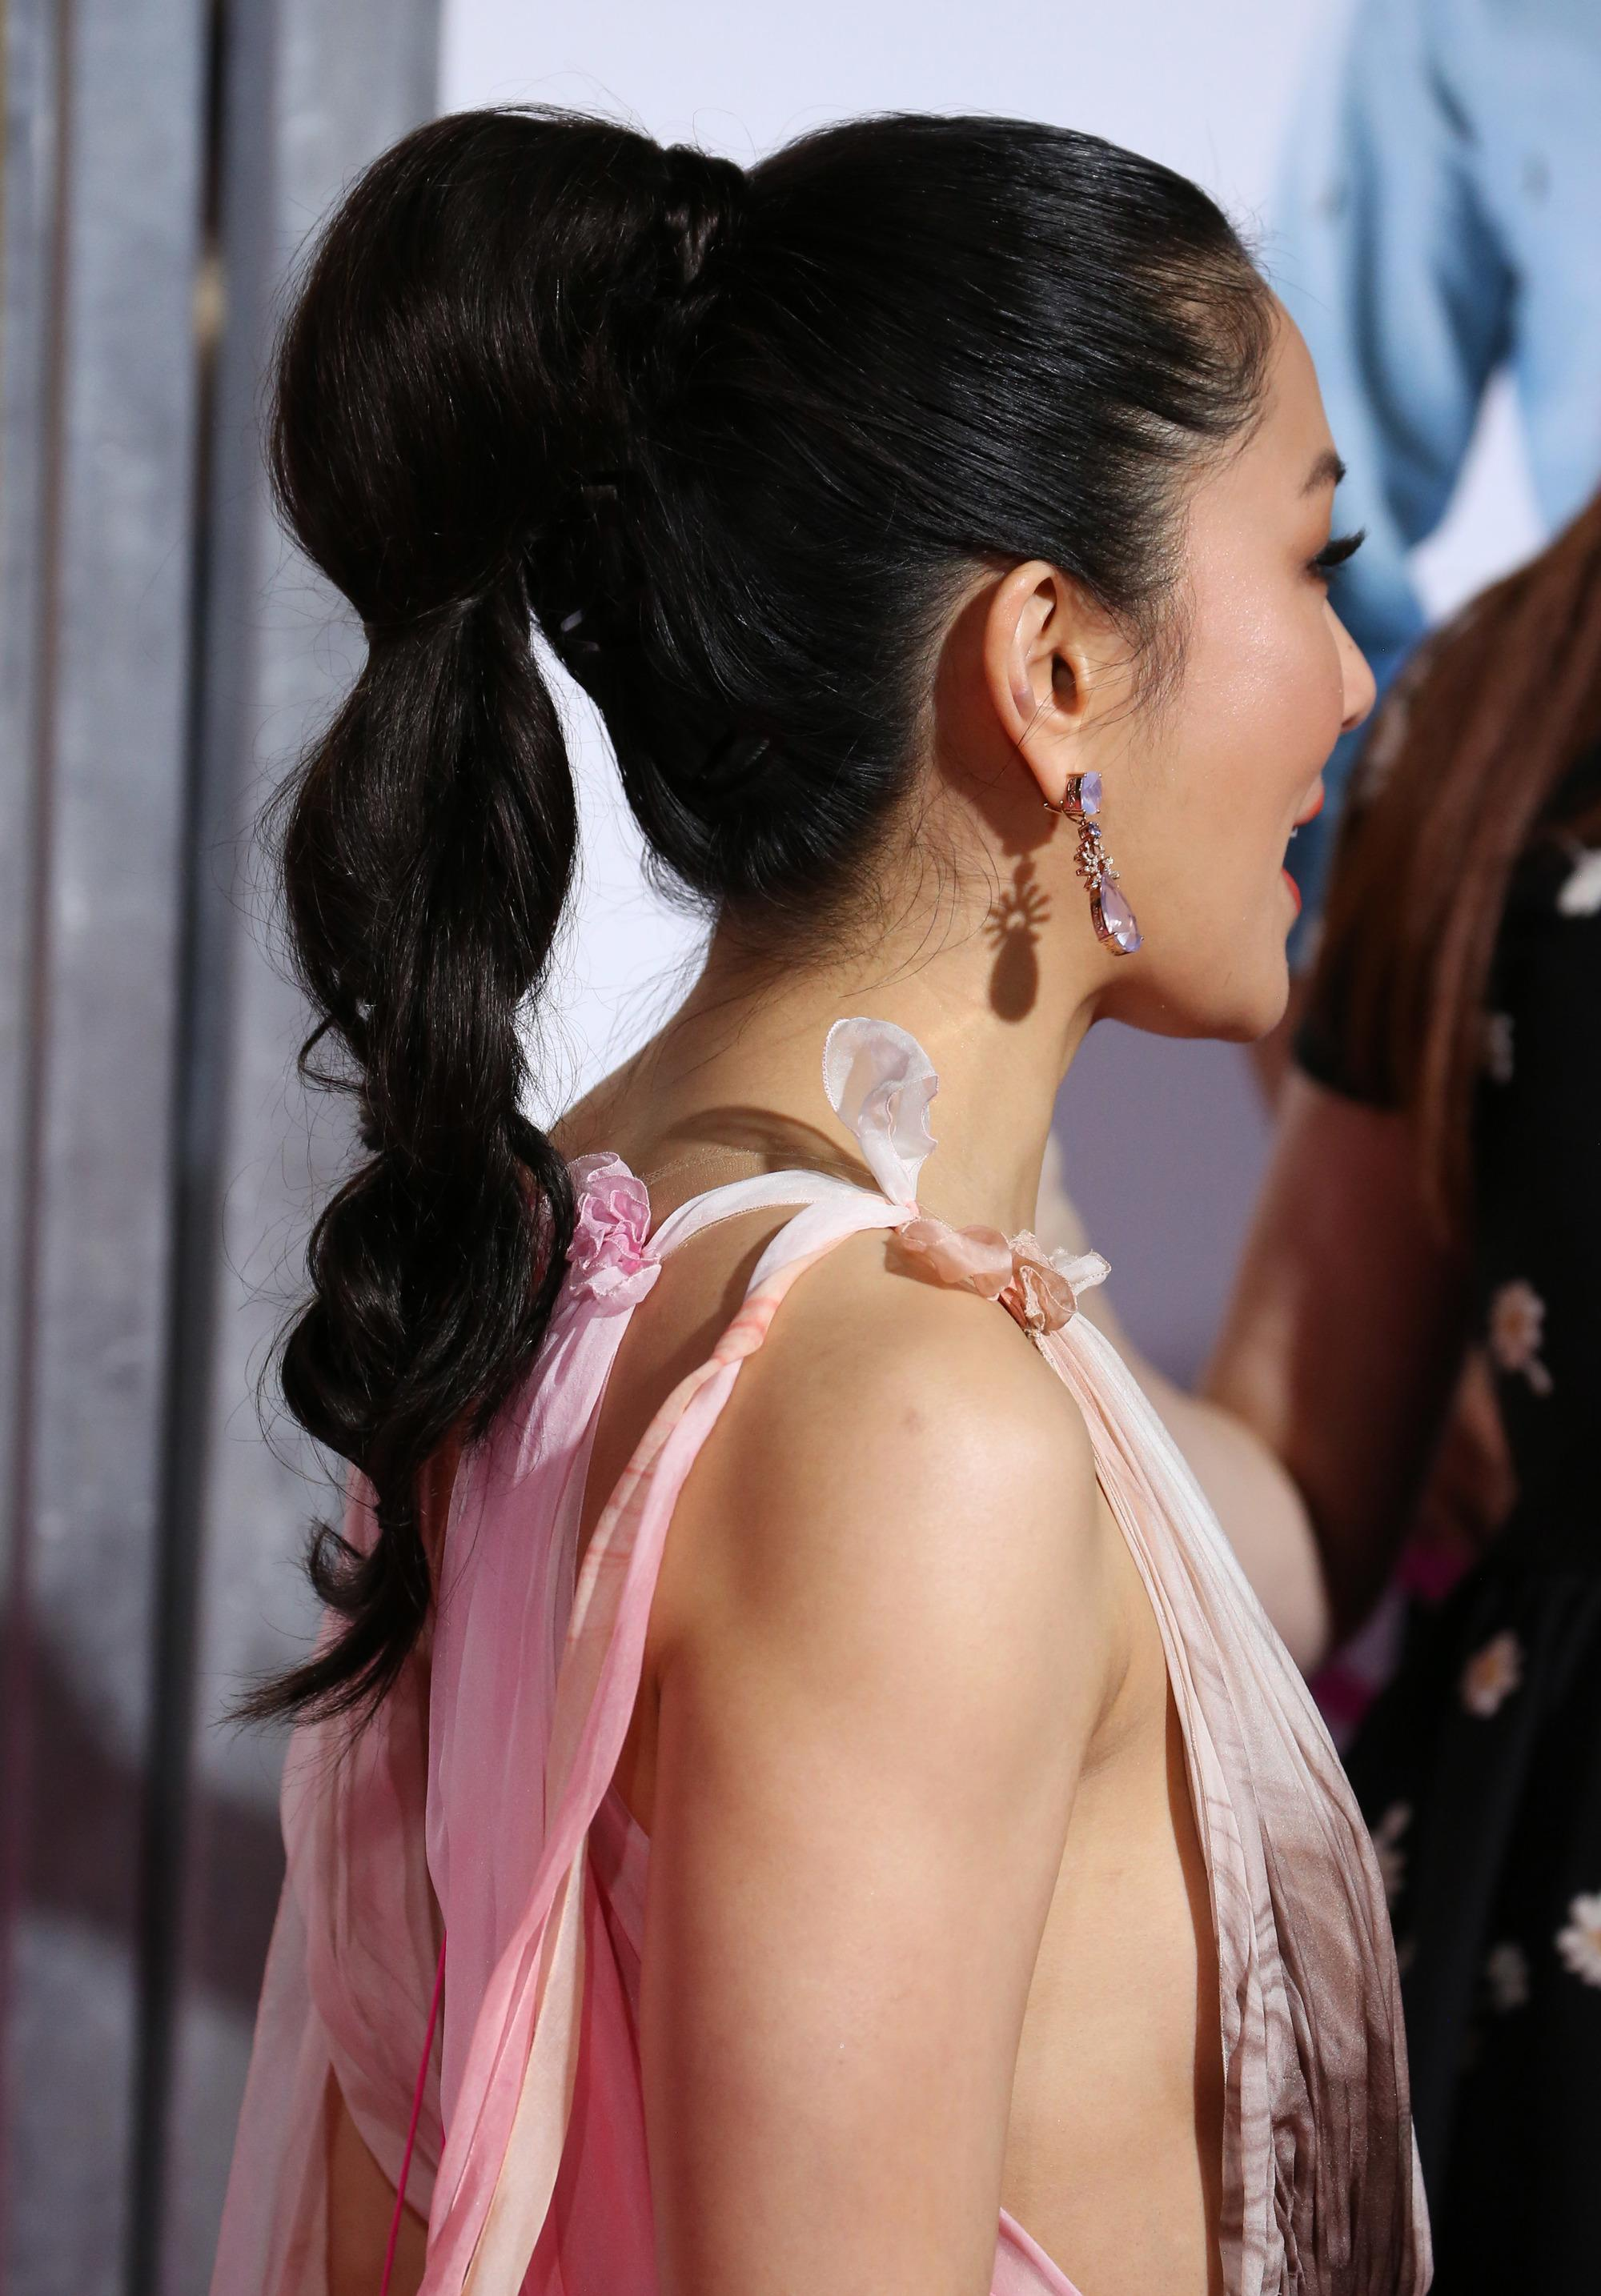 Hairstyles for thick hair: Constance Wu with long thick hair styled into a bubble ponytail